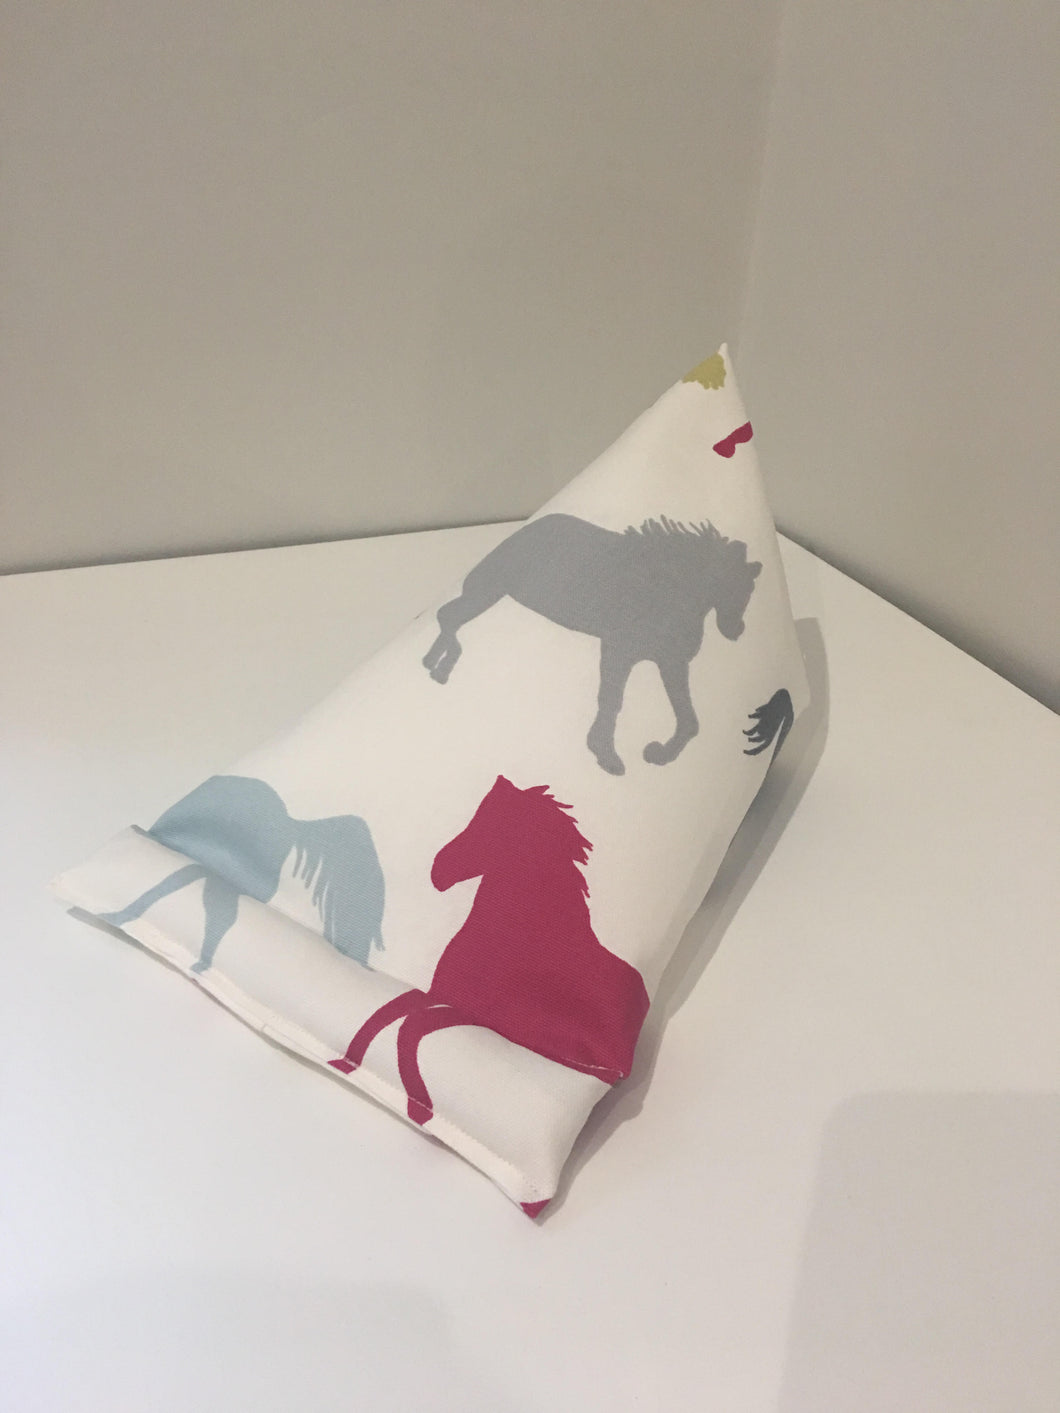 Horse iPad/Book cushion